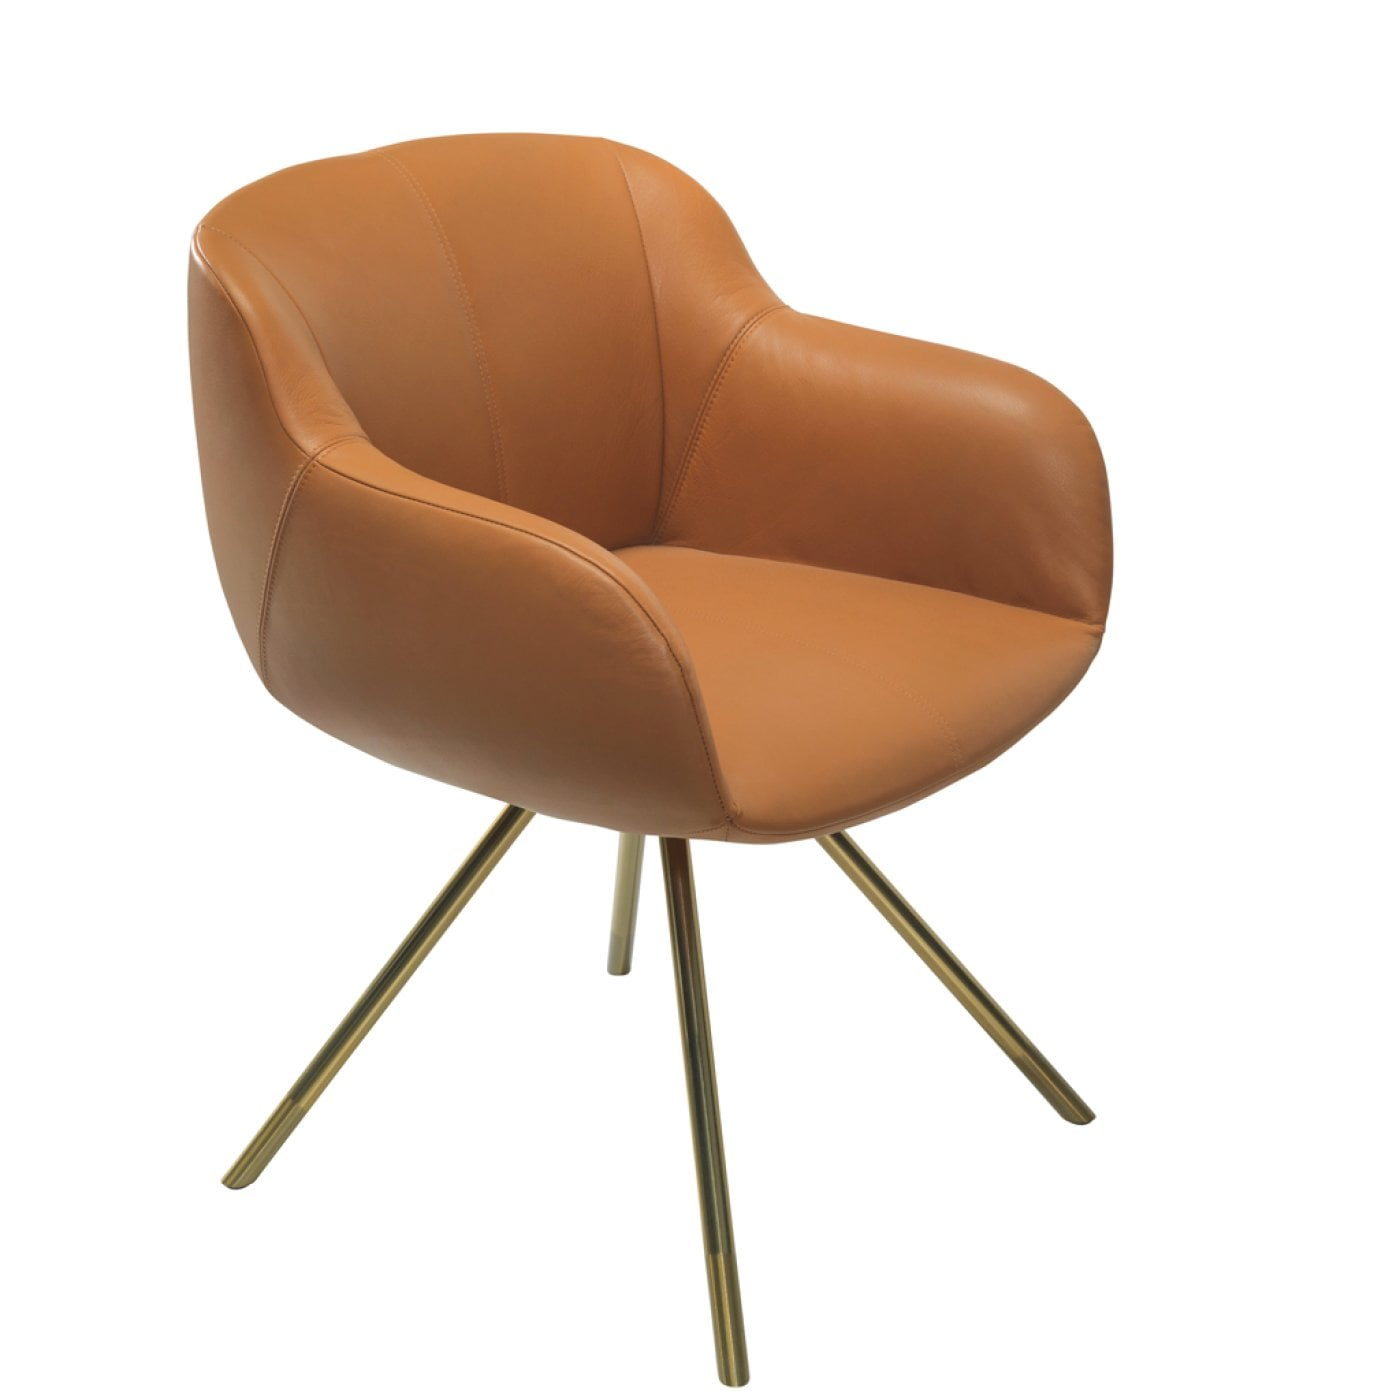 Sessel Cognac Shell Cognac Leather Armchair Rosenthal Porcelain Online Shop